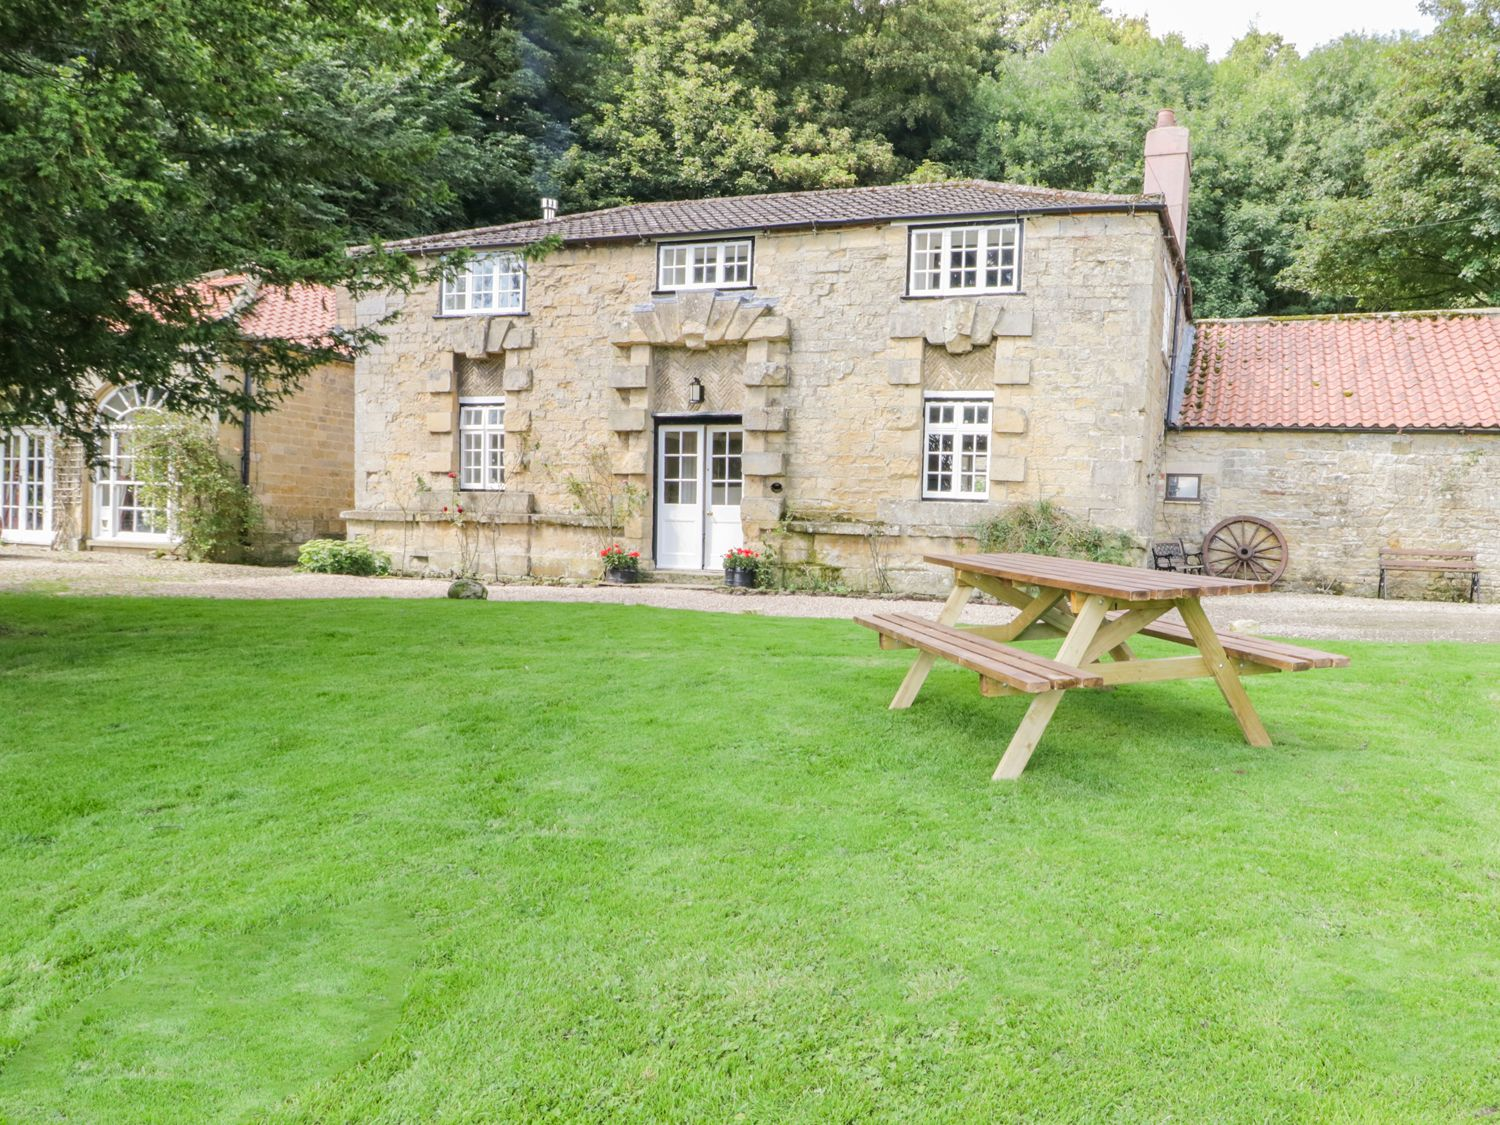 Photo of The Stables Ebberston ( Ref 964170 ) Self catering accommodation in Allerston near Scarborough North Yorkshire